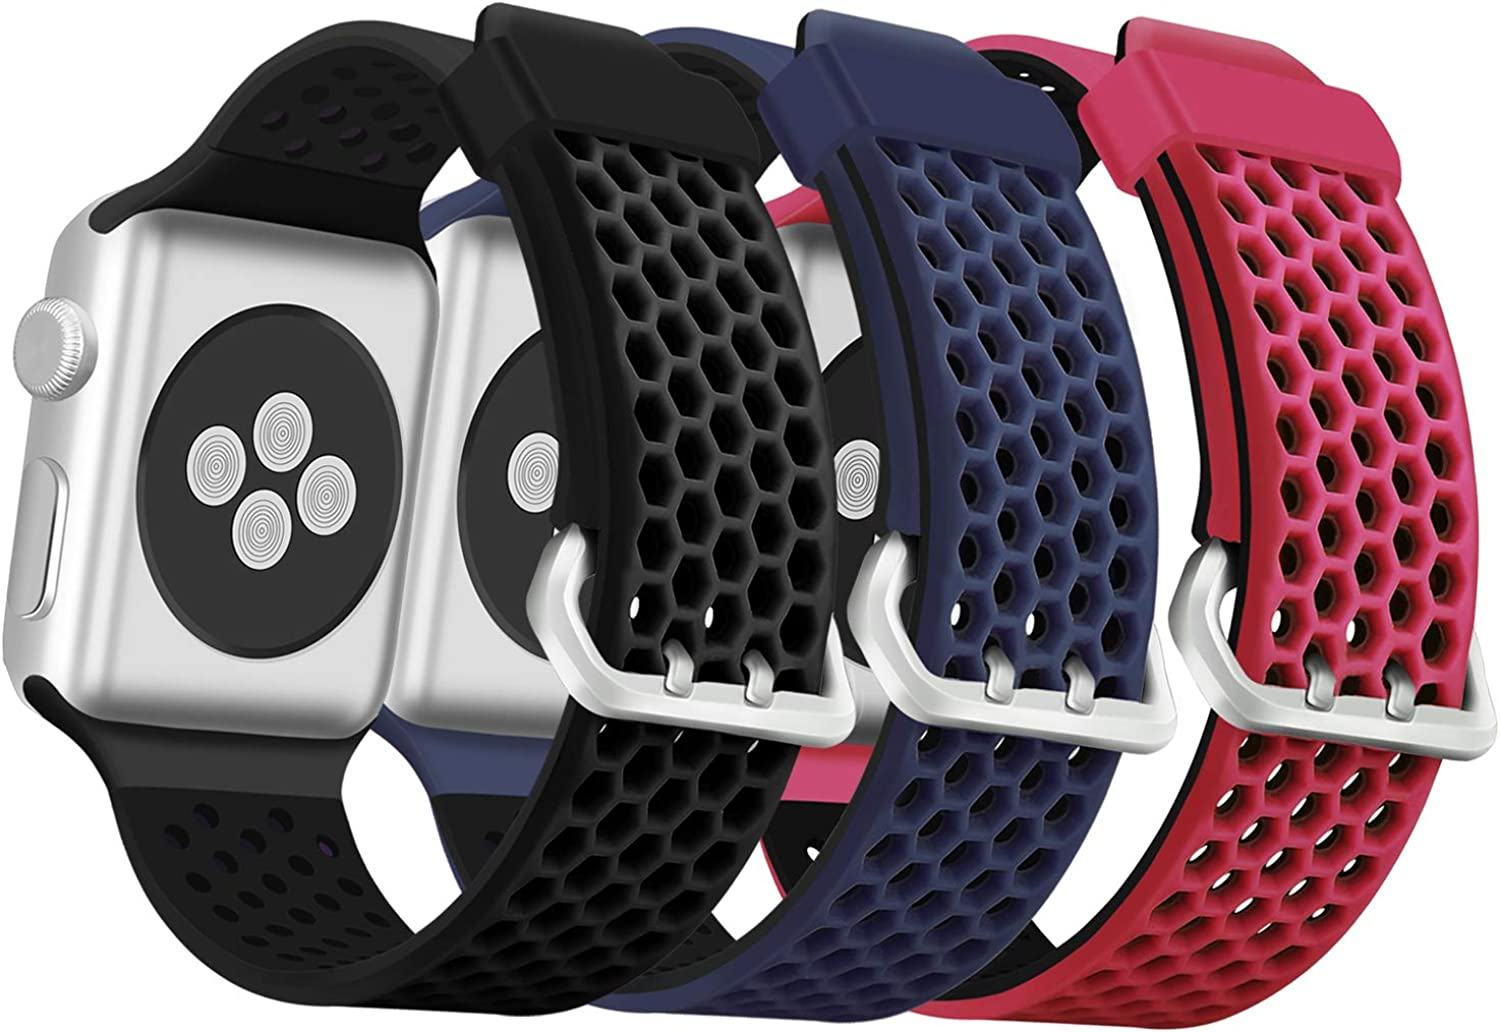 ESeekGo 3-Pack Compatible with Apple Watch Band Series 44mm Series 5 Series 6/SE Series 4, Compatible with Apple Watch Sport Band 42mm Series 3 38mm, Soft Silicone Bands for iWatch Series 2 1